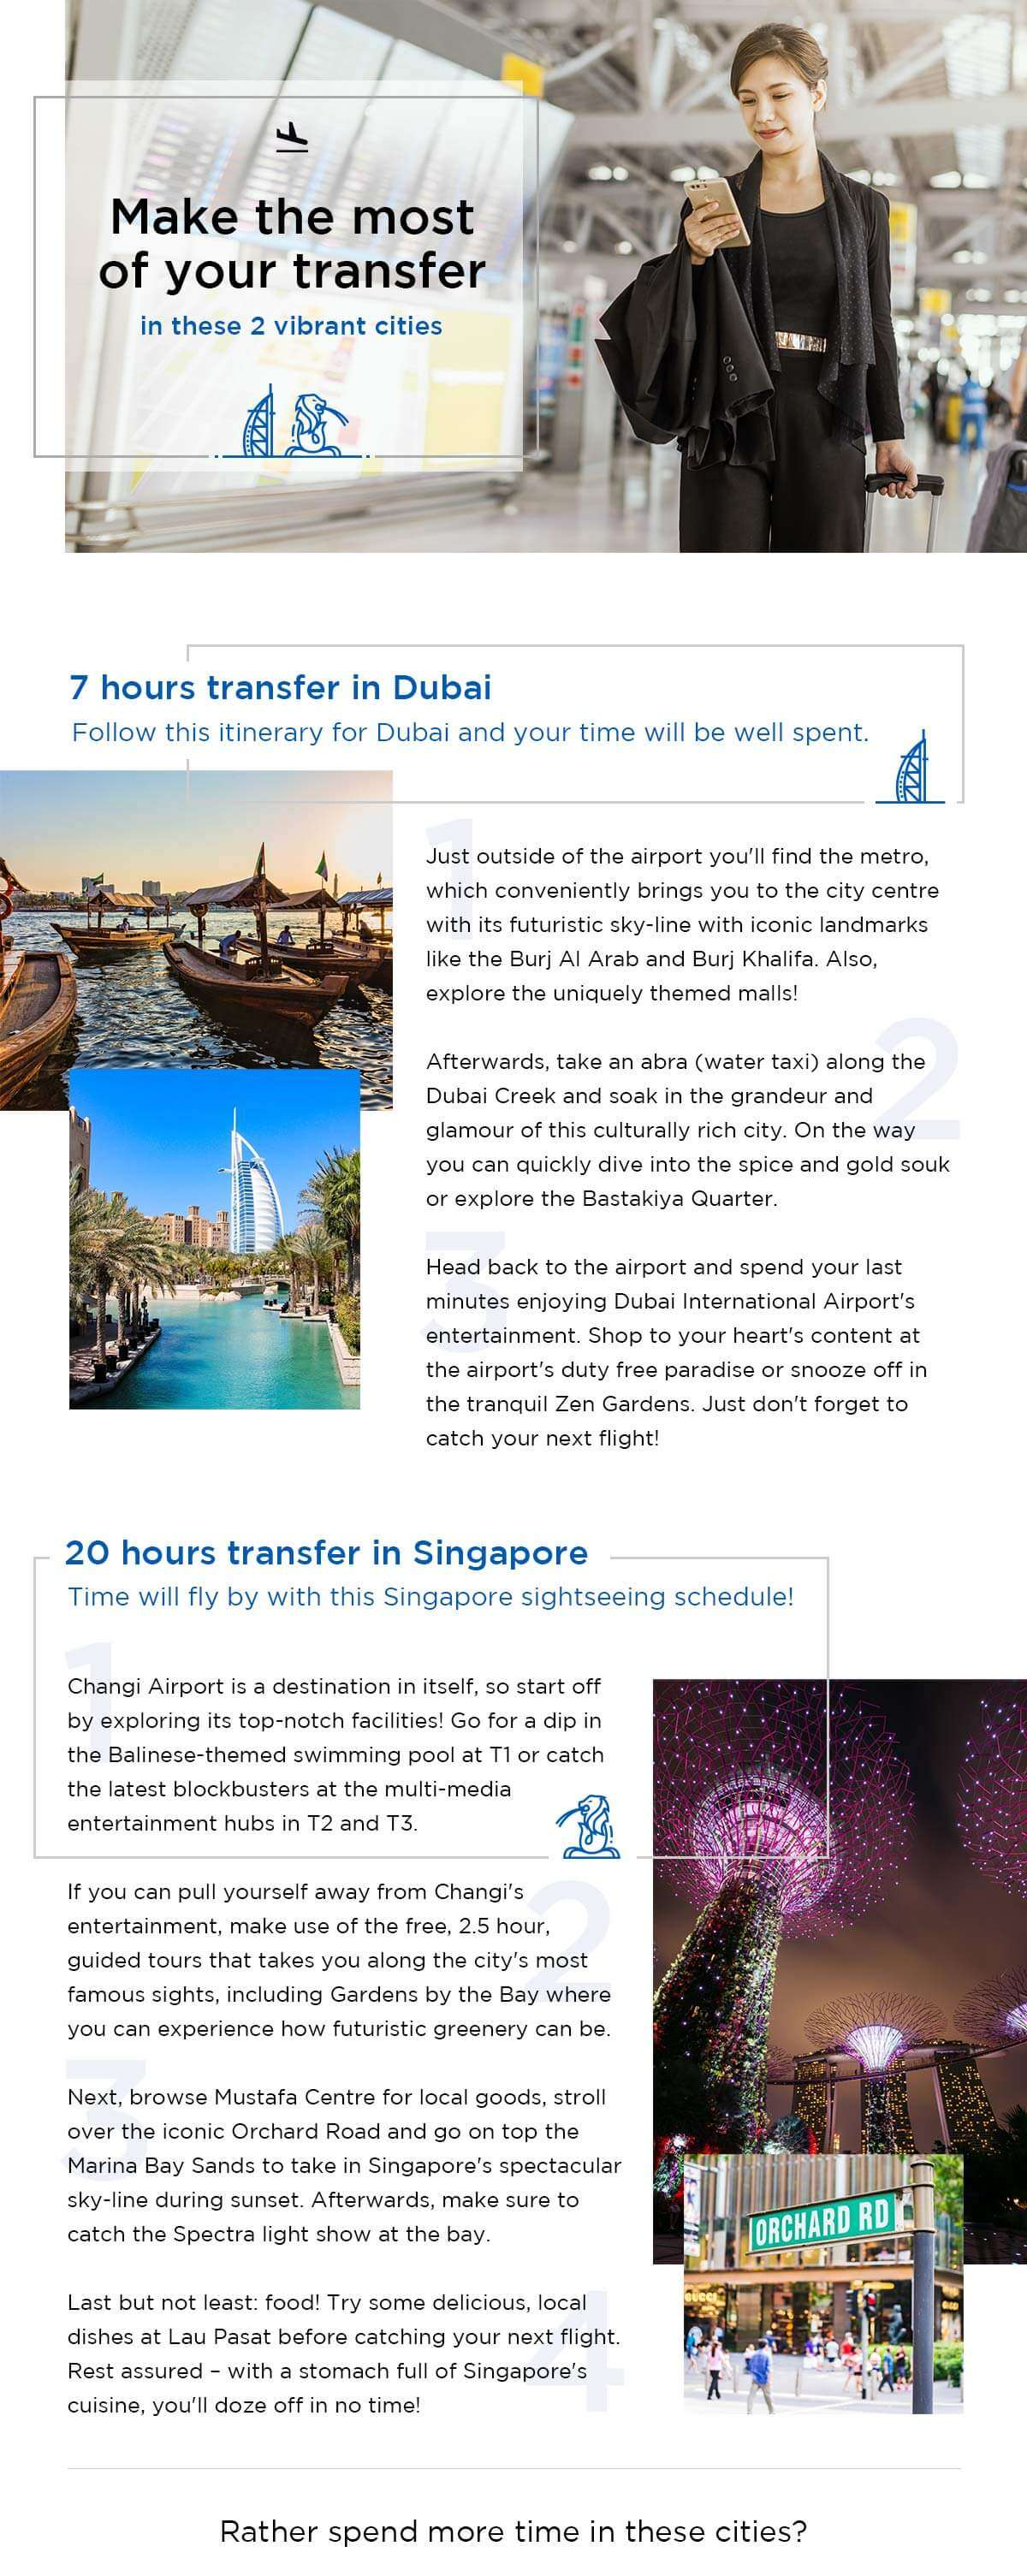 How to spend your transfer in Dubai and Singapore